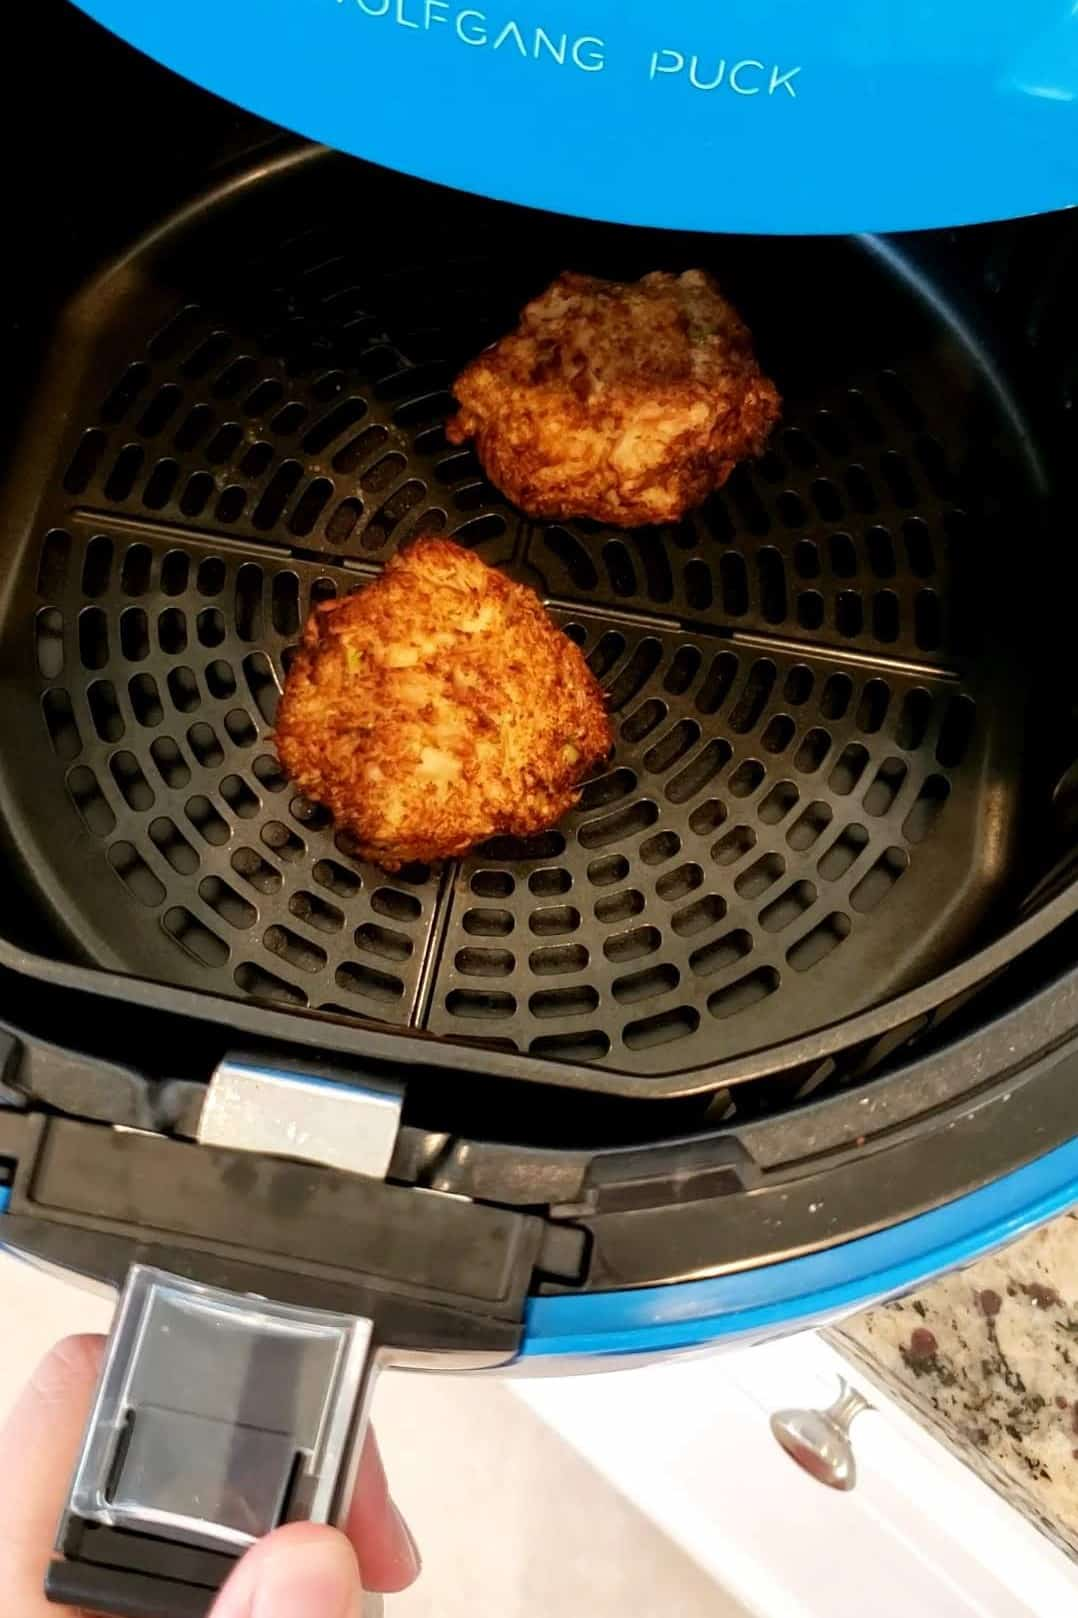 two salmon patties in an air fryer basket after just finishing cooking